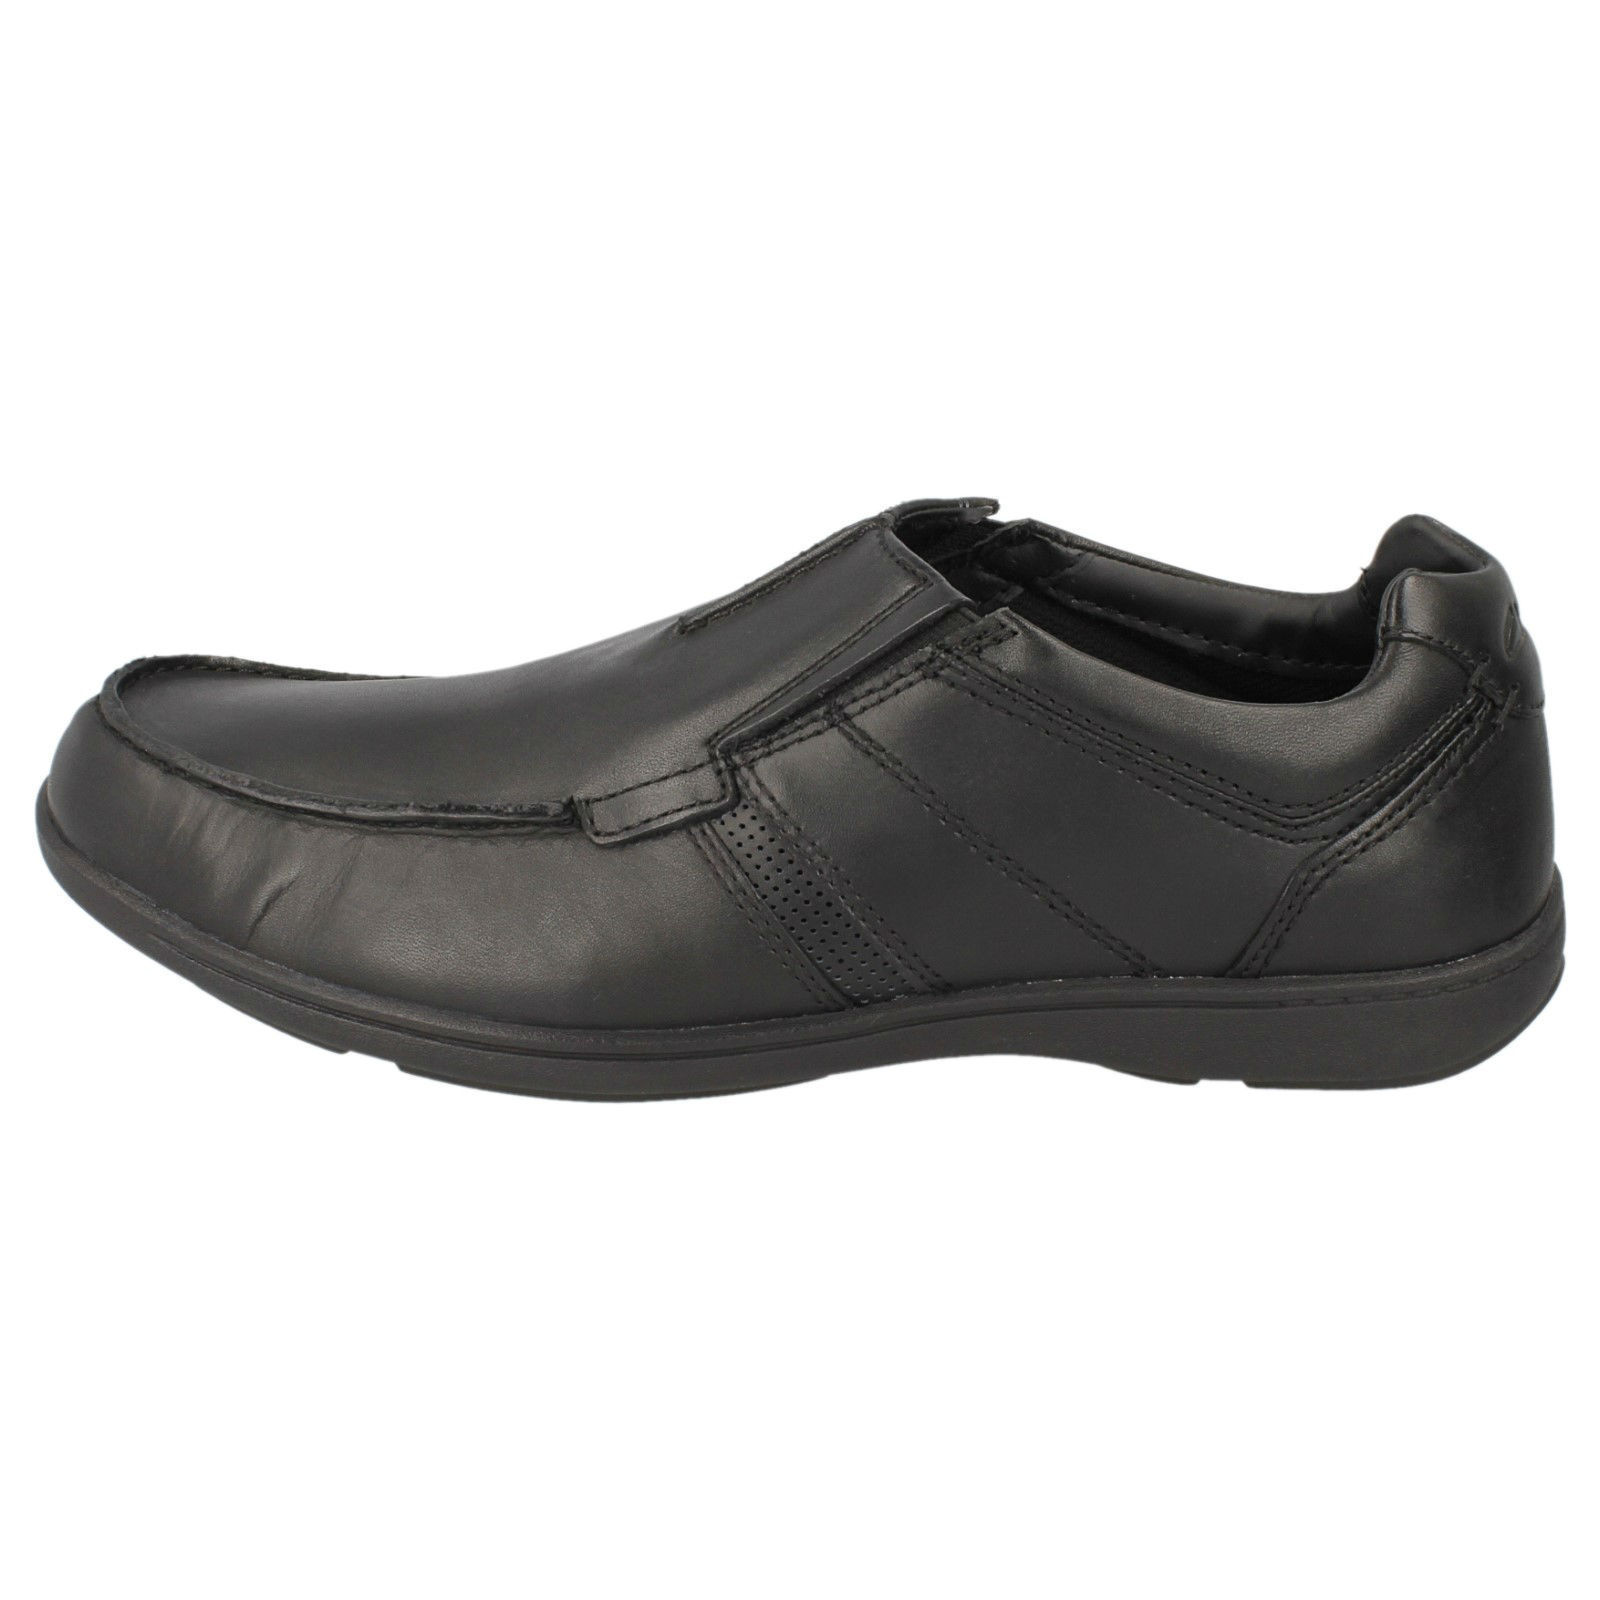 What Is The Width Of G Fitting Mens Shoes